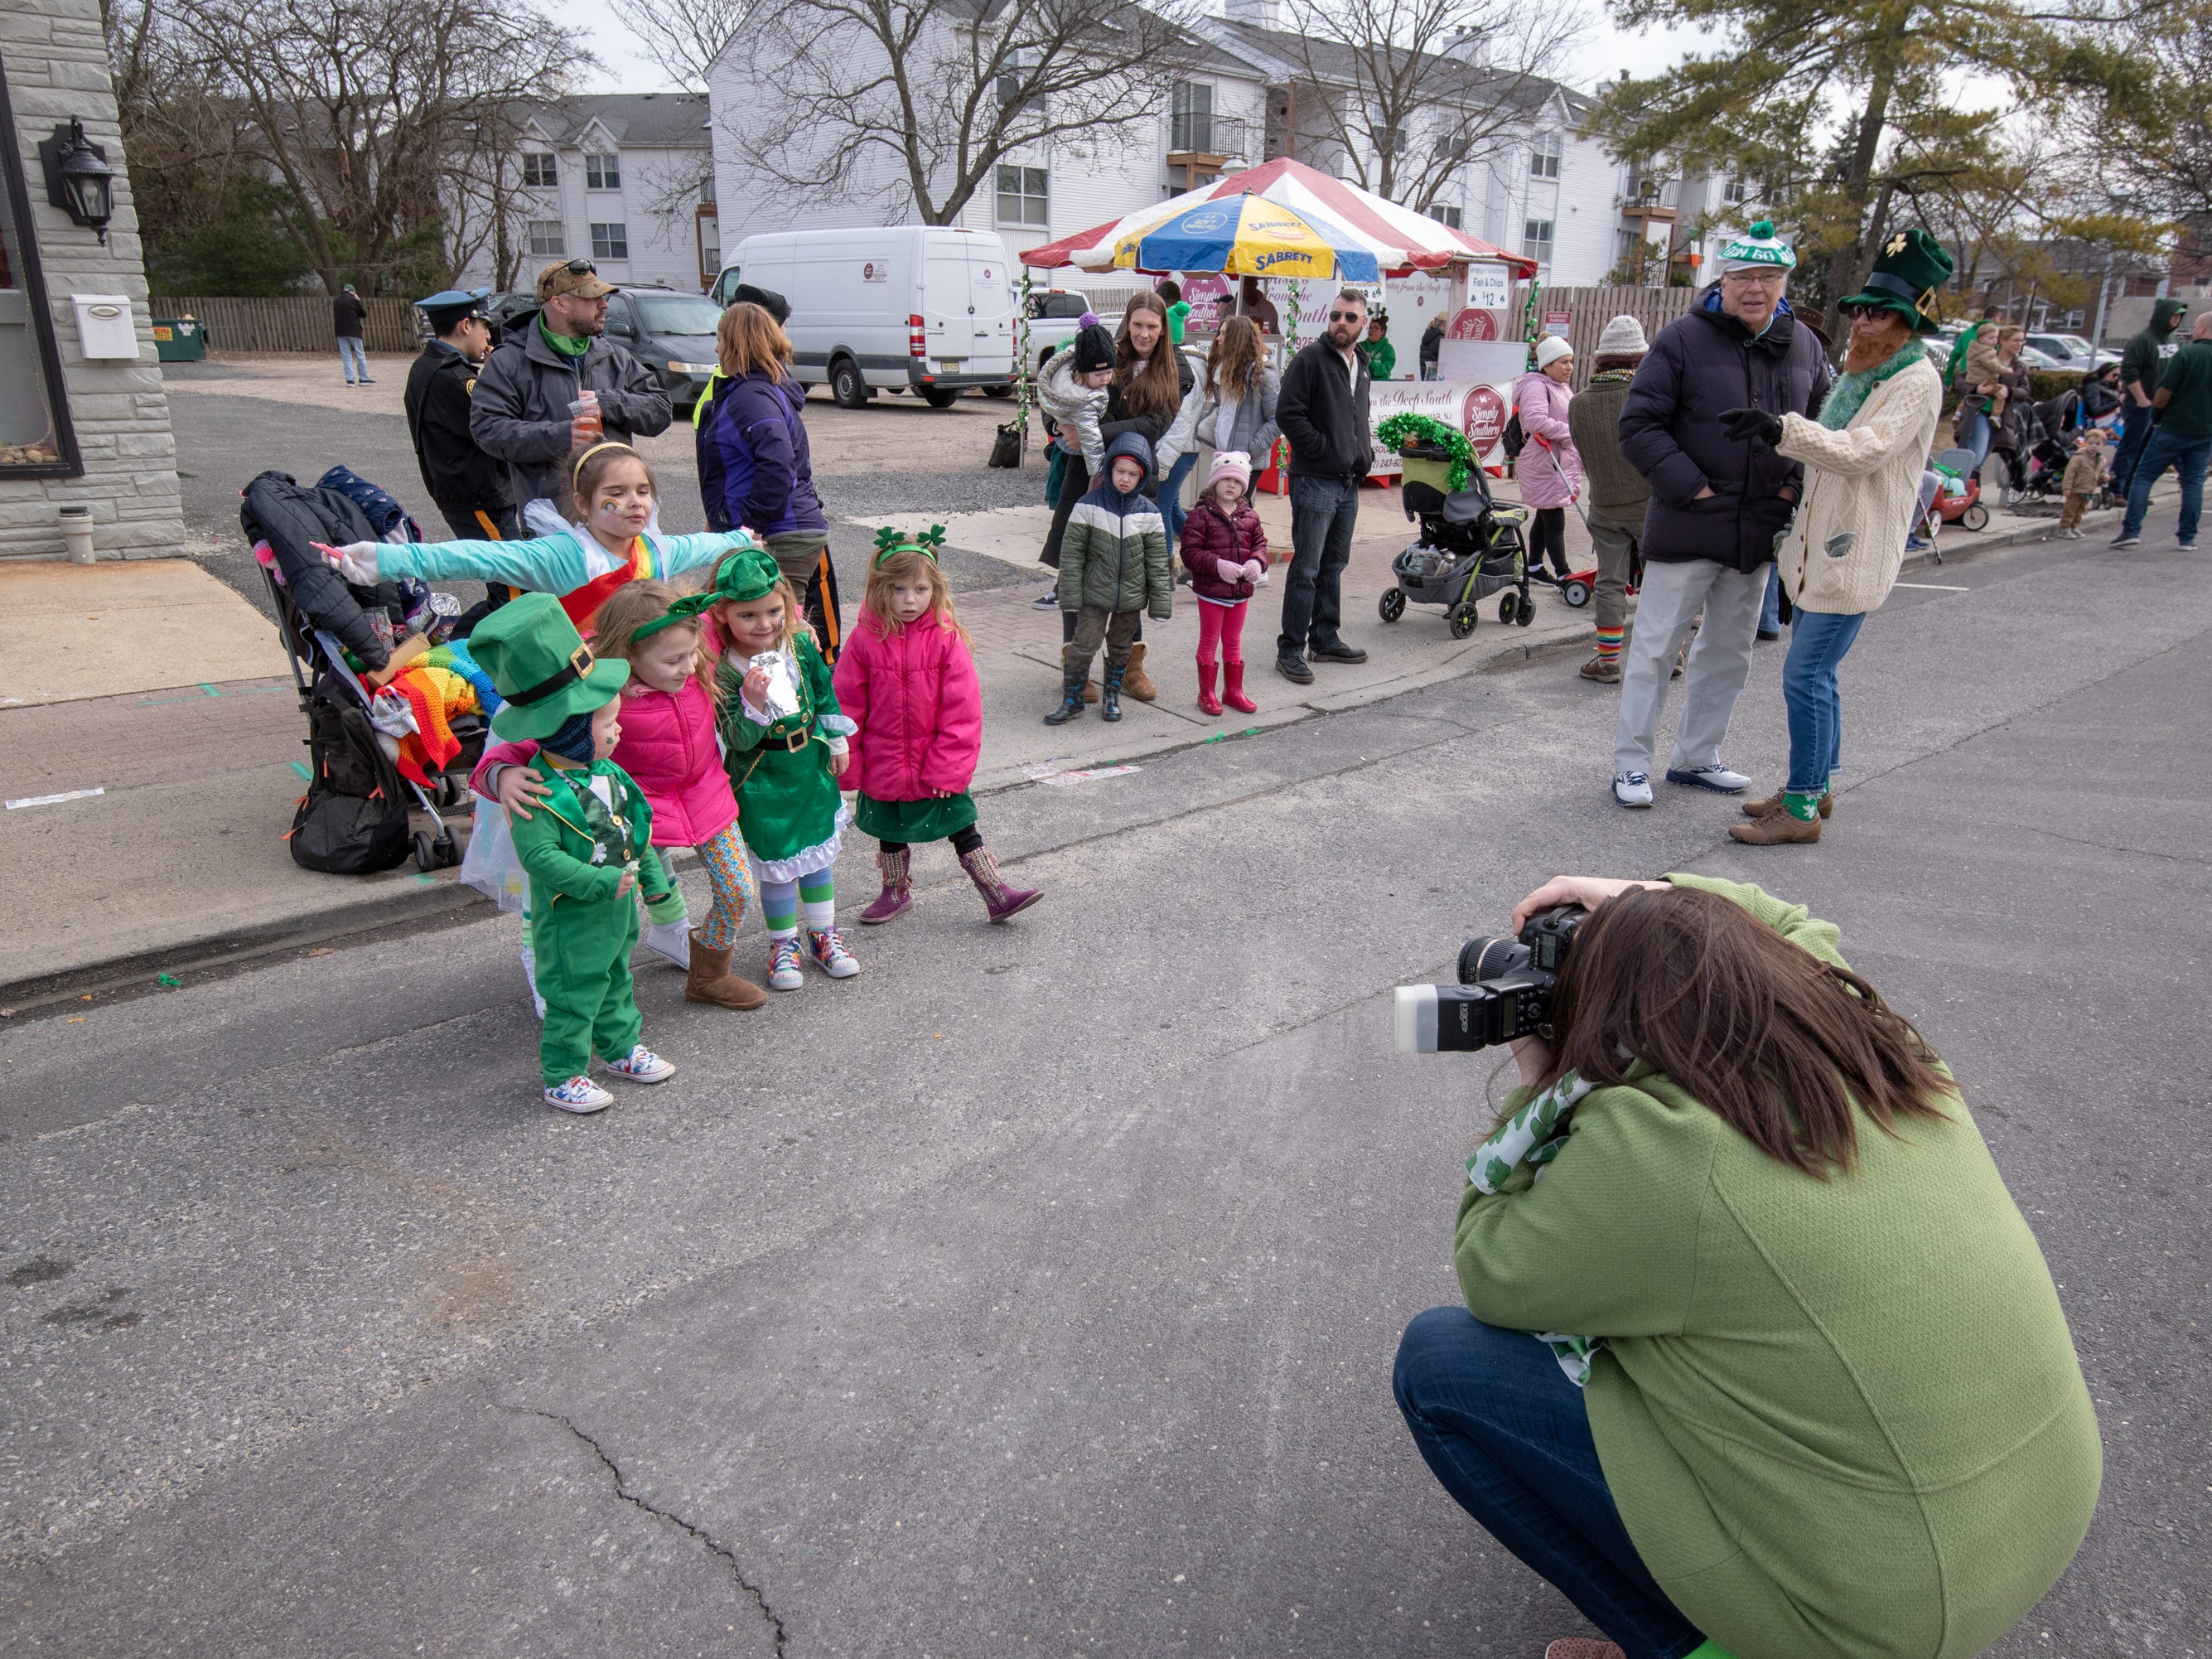 Dawn McGinley of New Egypt takes photos of her family. The 46th annual Belmar/Lake Como St. Patrick's Day Parade was held in Belmar on March 3, 2019.